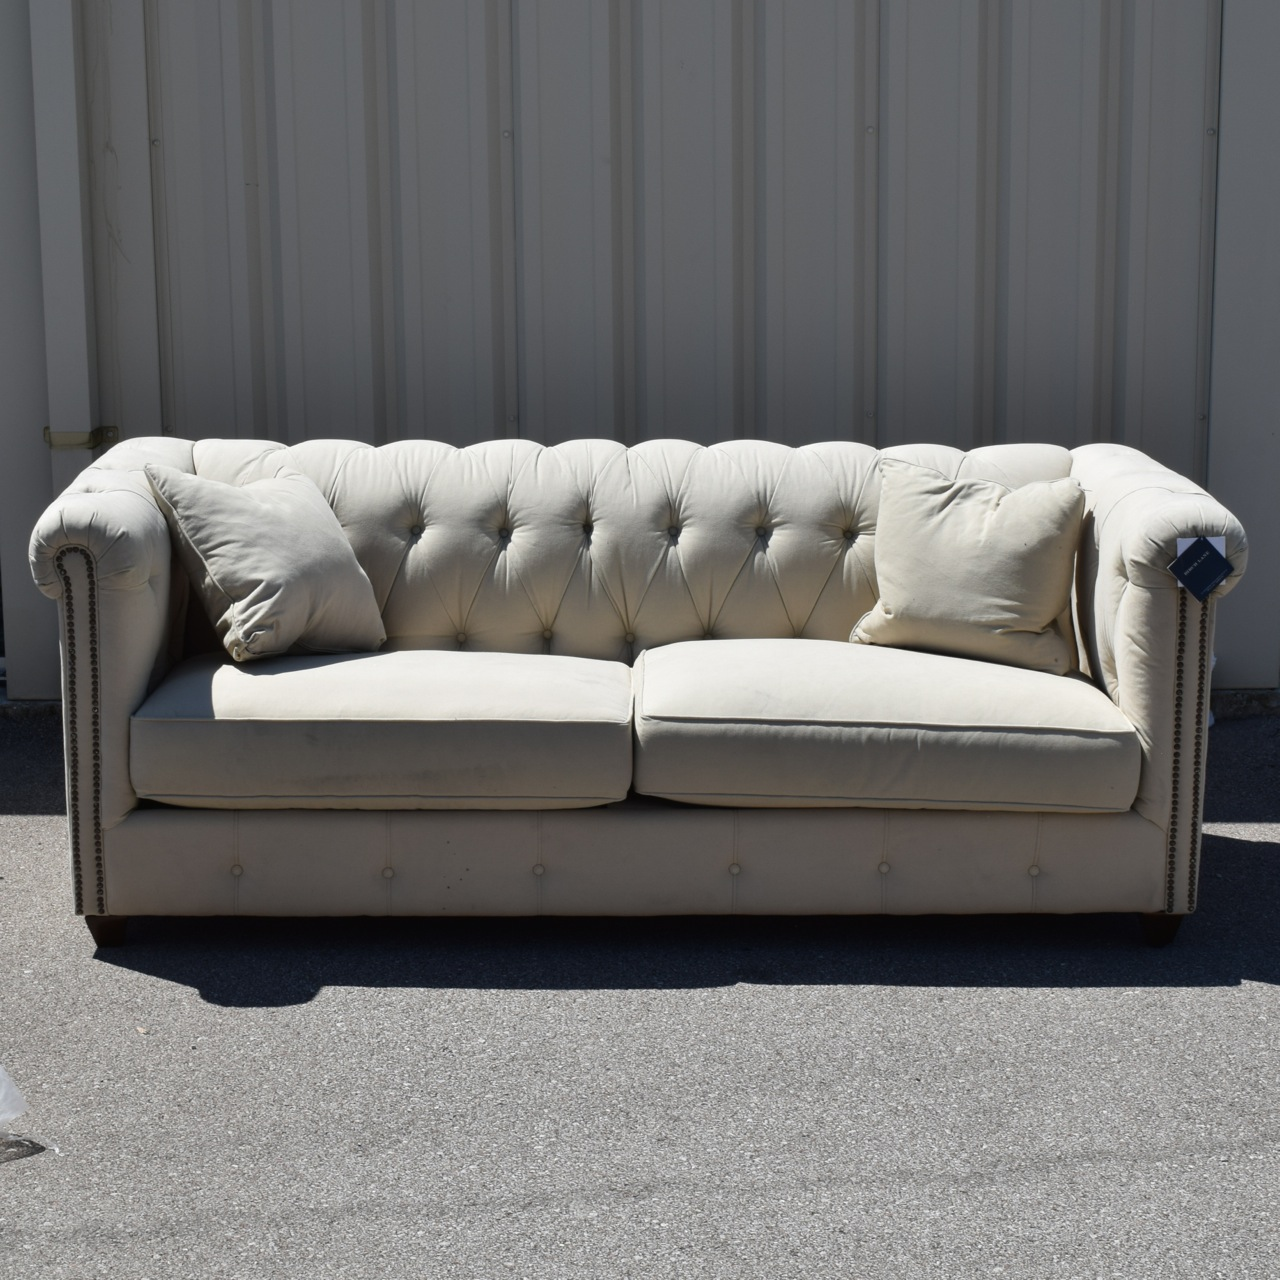 birch lane sofa. Birch Lane Trevino Chesterfield Sofa .